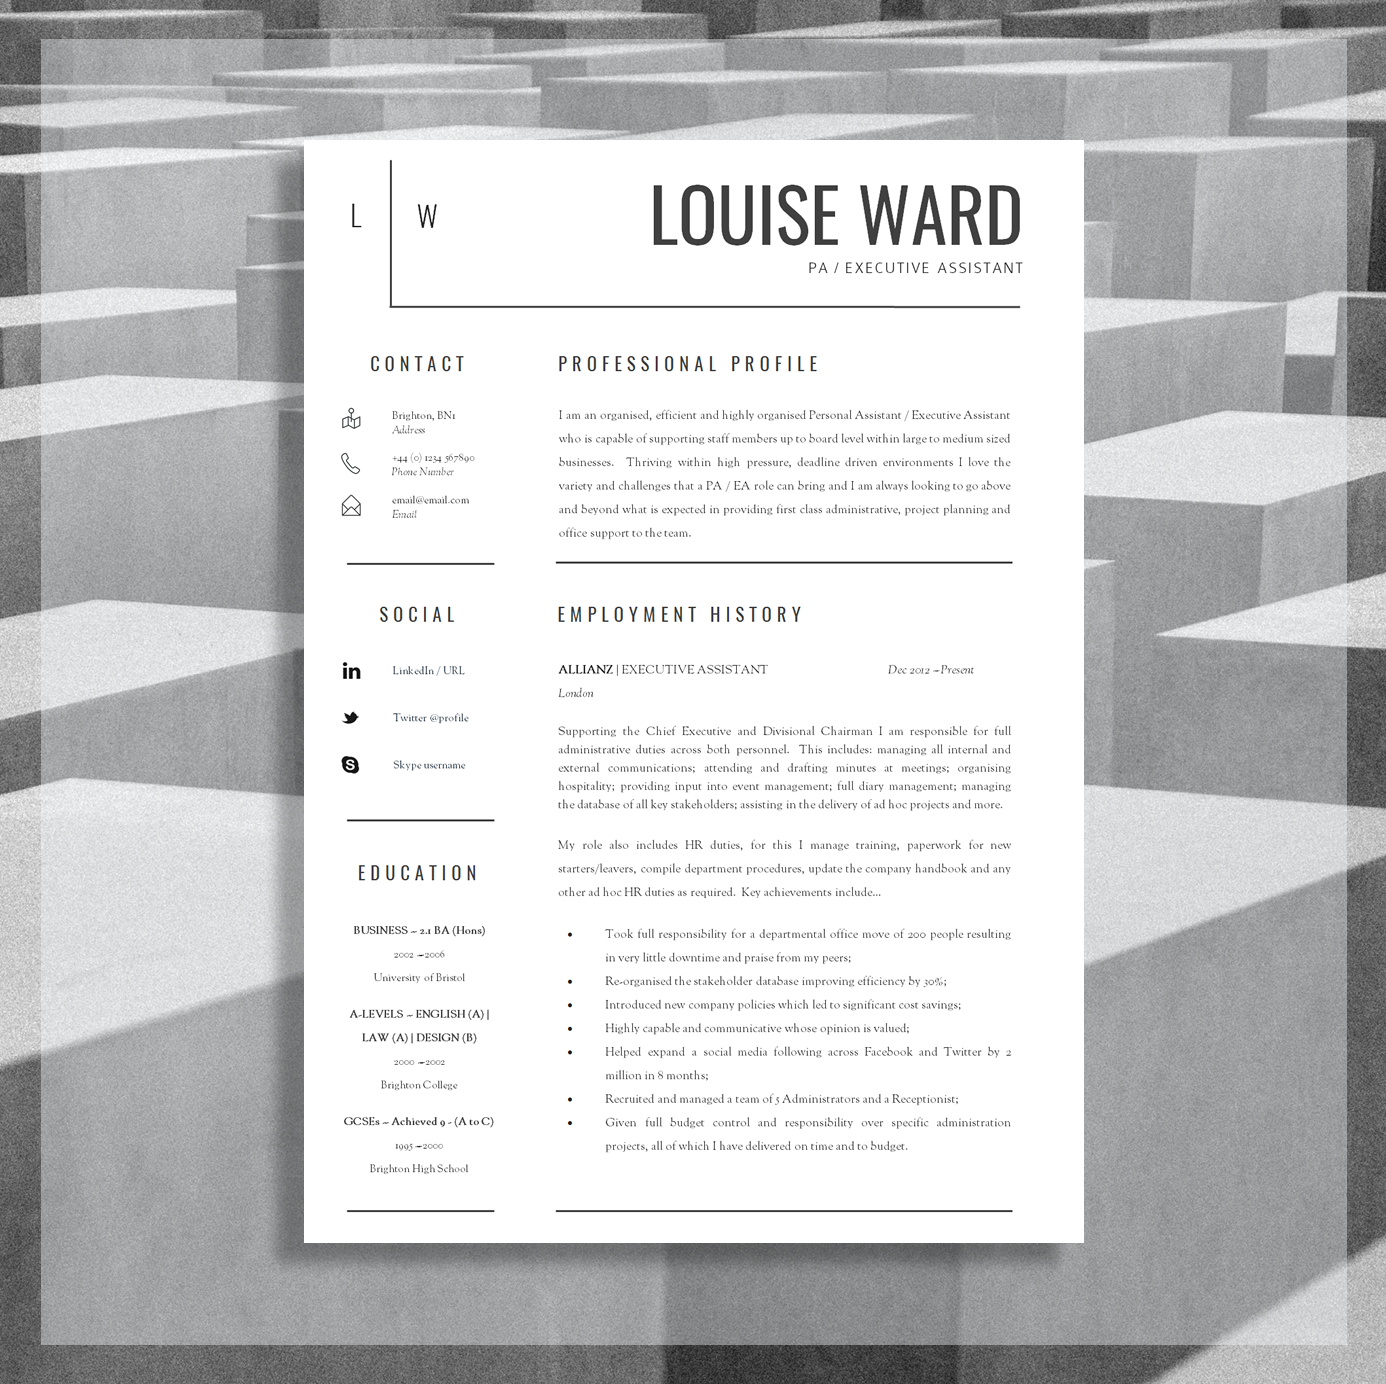 Download this Professional Resume Here.